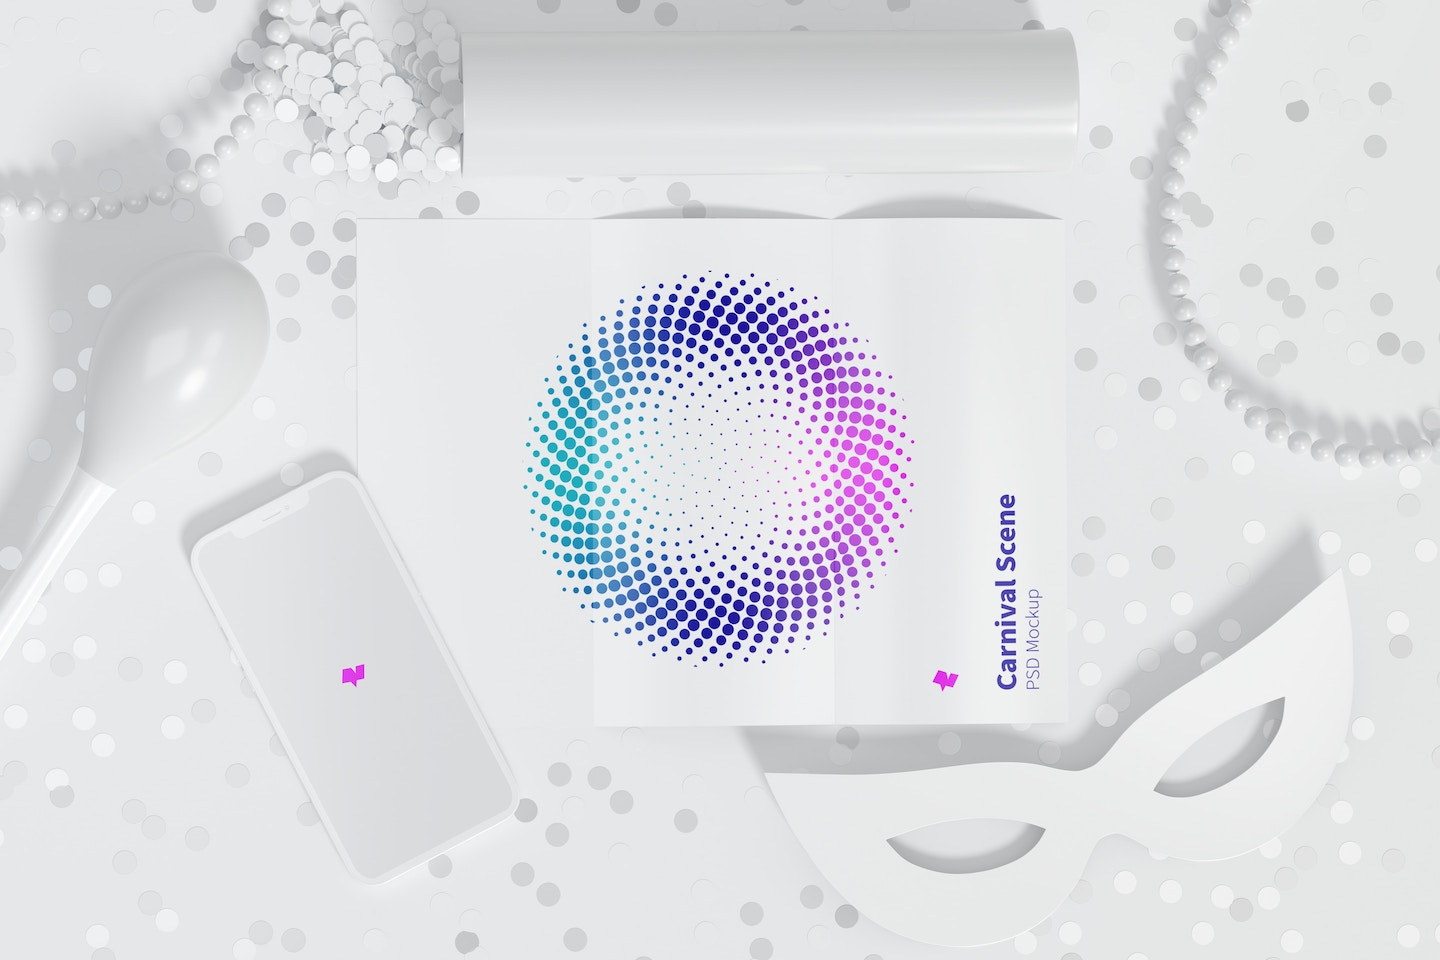 Carnival Scene Mockup with Brochure and iPhone